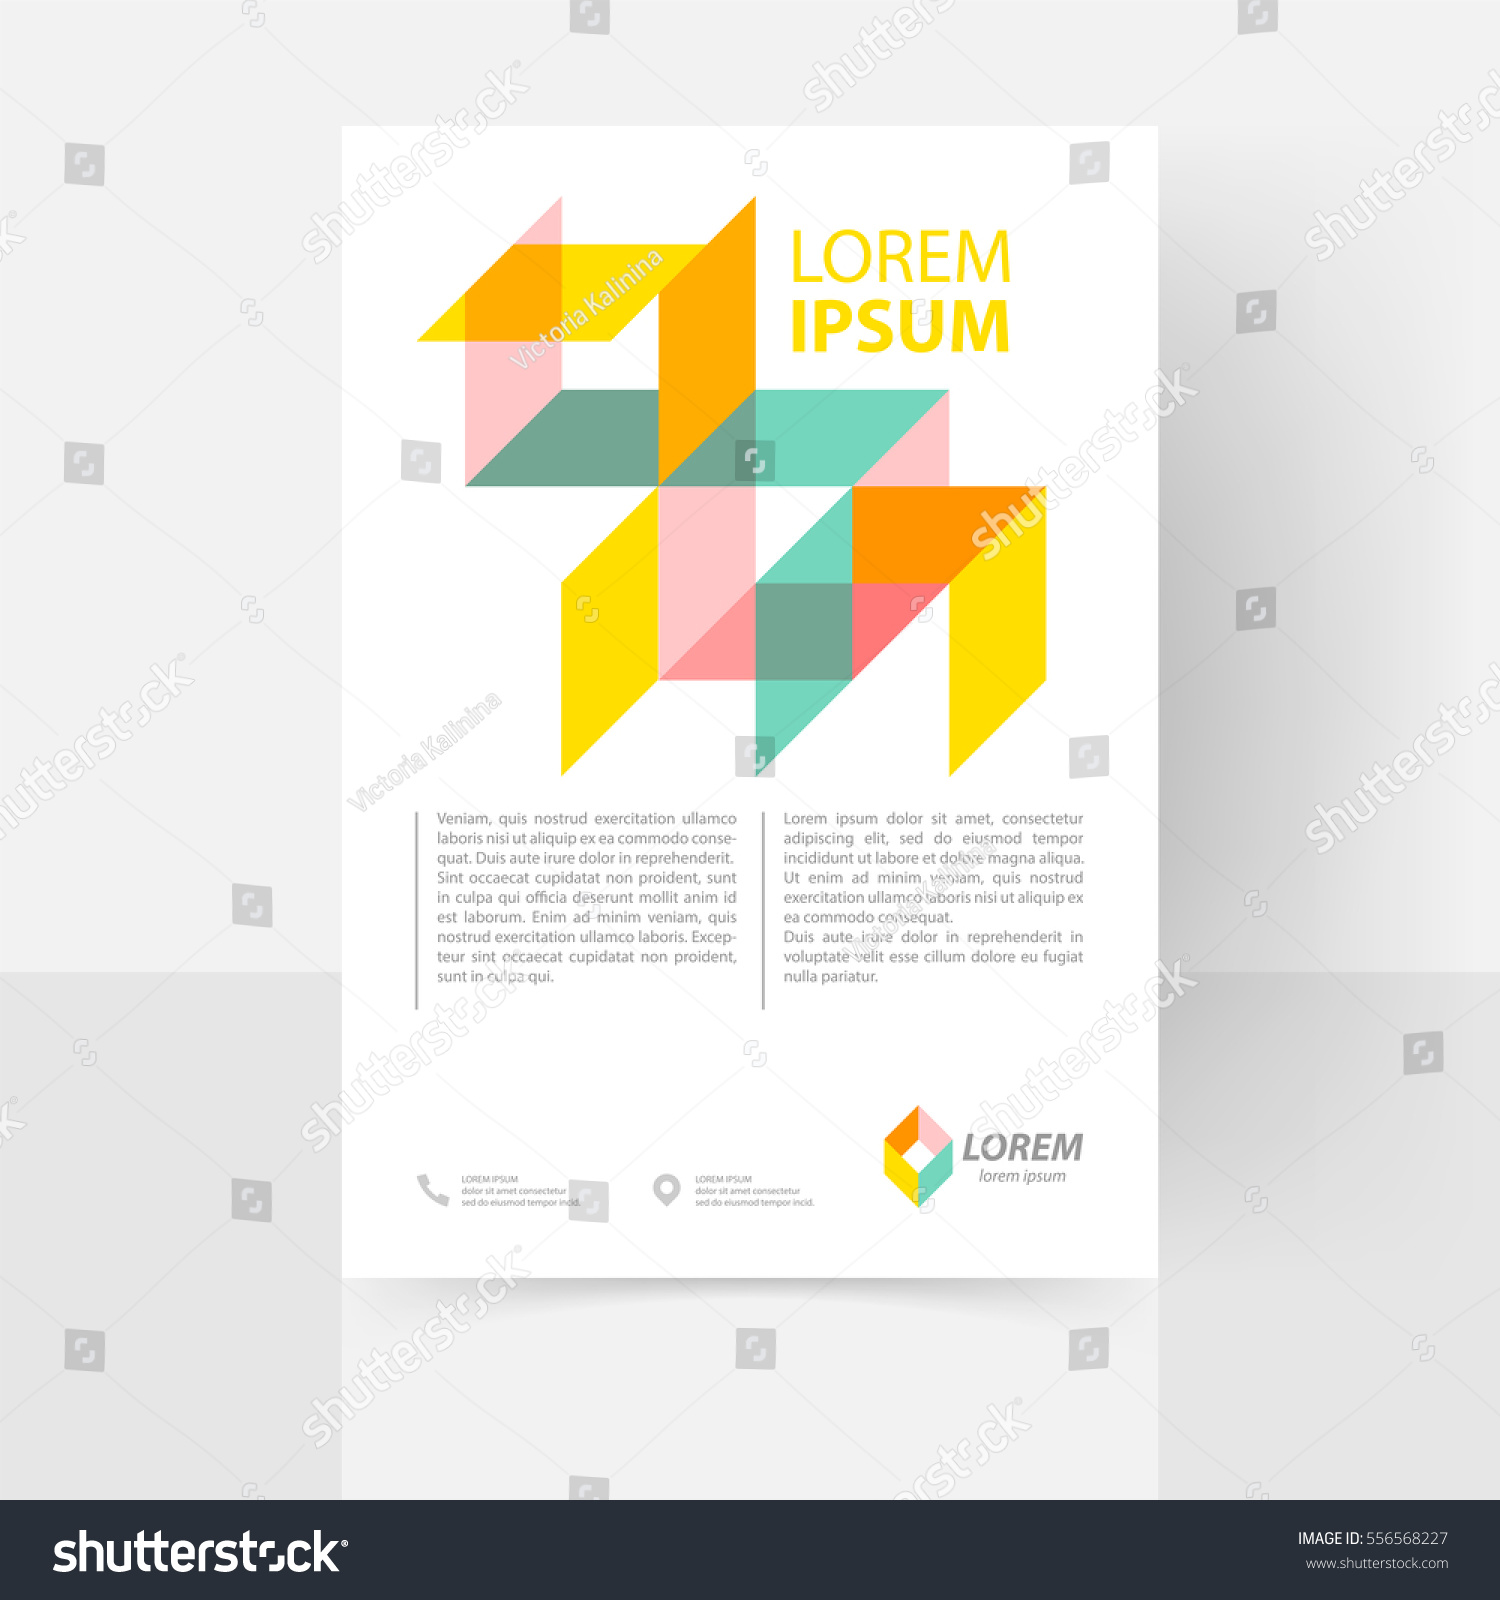 Poster design eps - Vector Text Template For Flyer Poster Report Brochure Abstract Clean Geometric Design